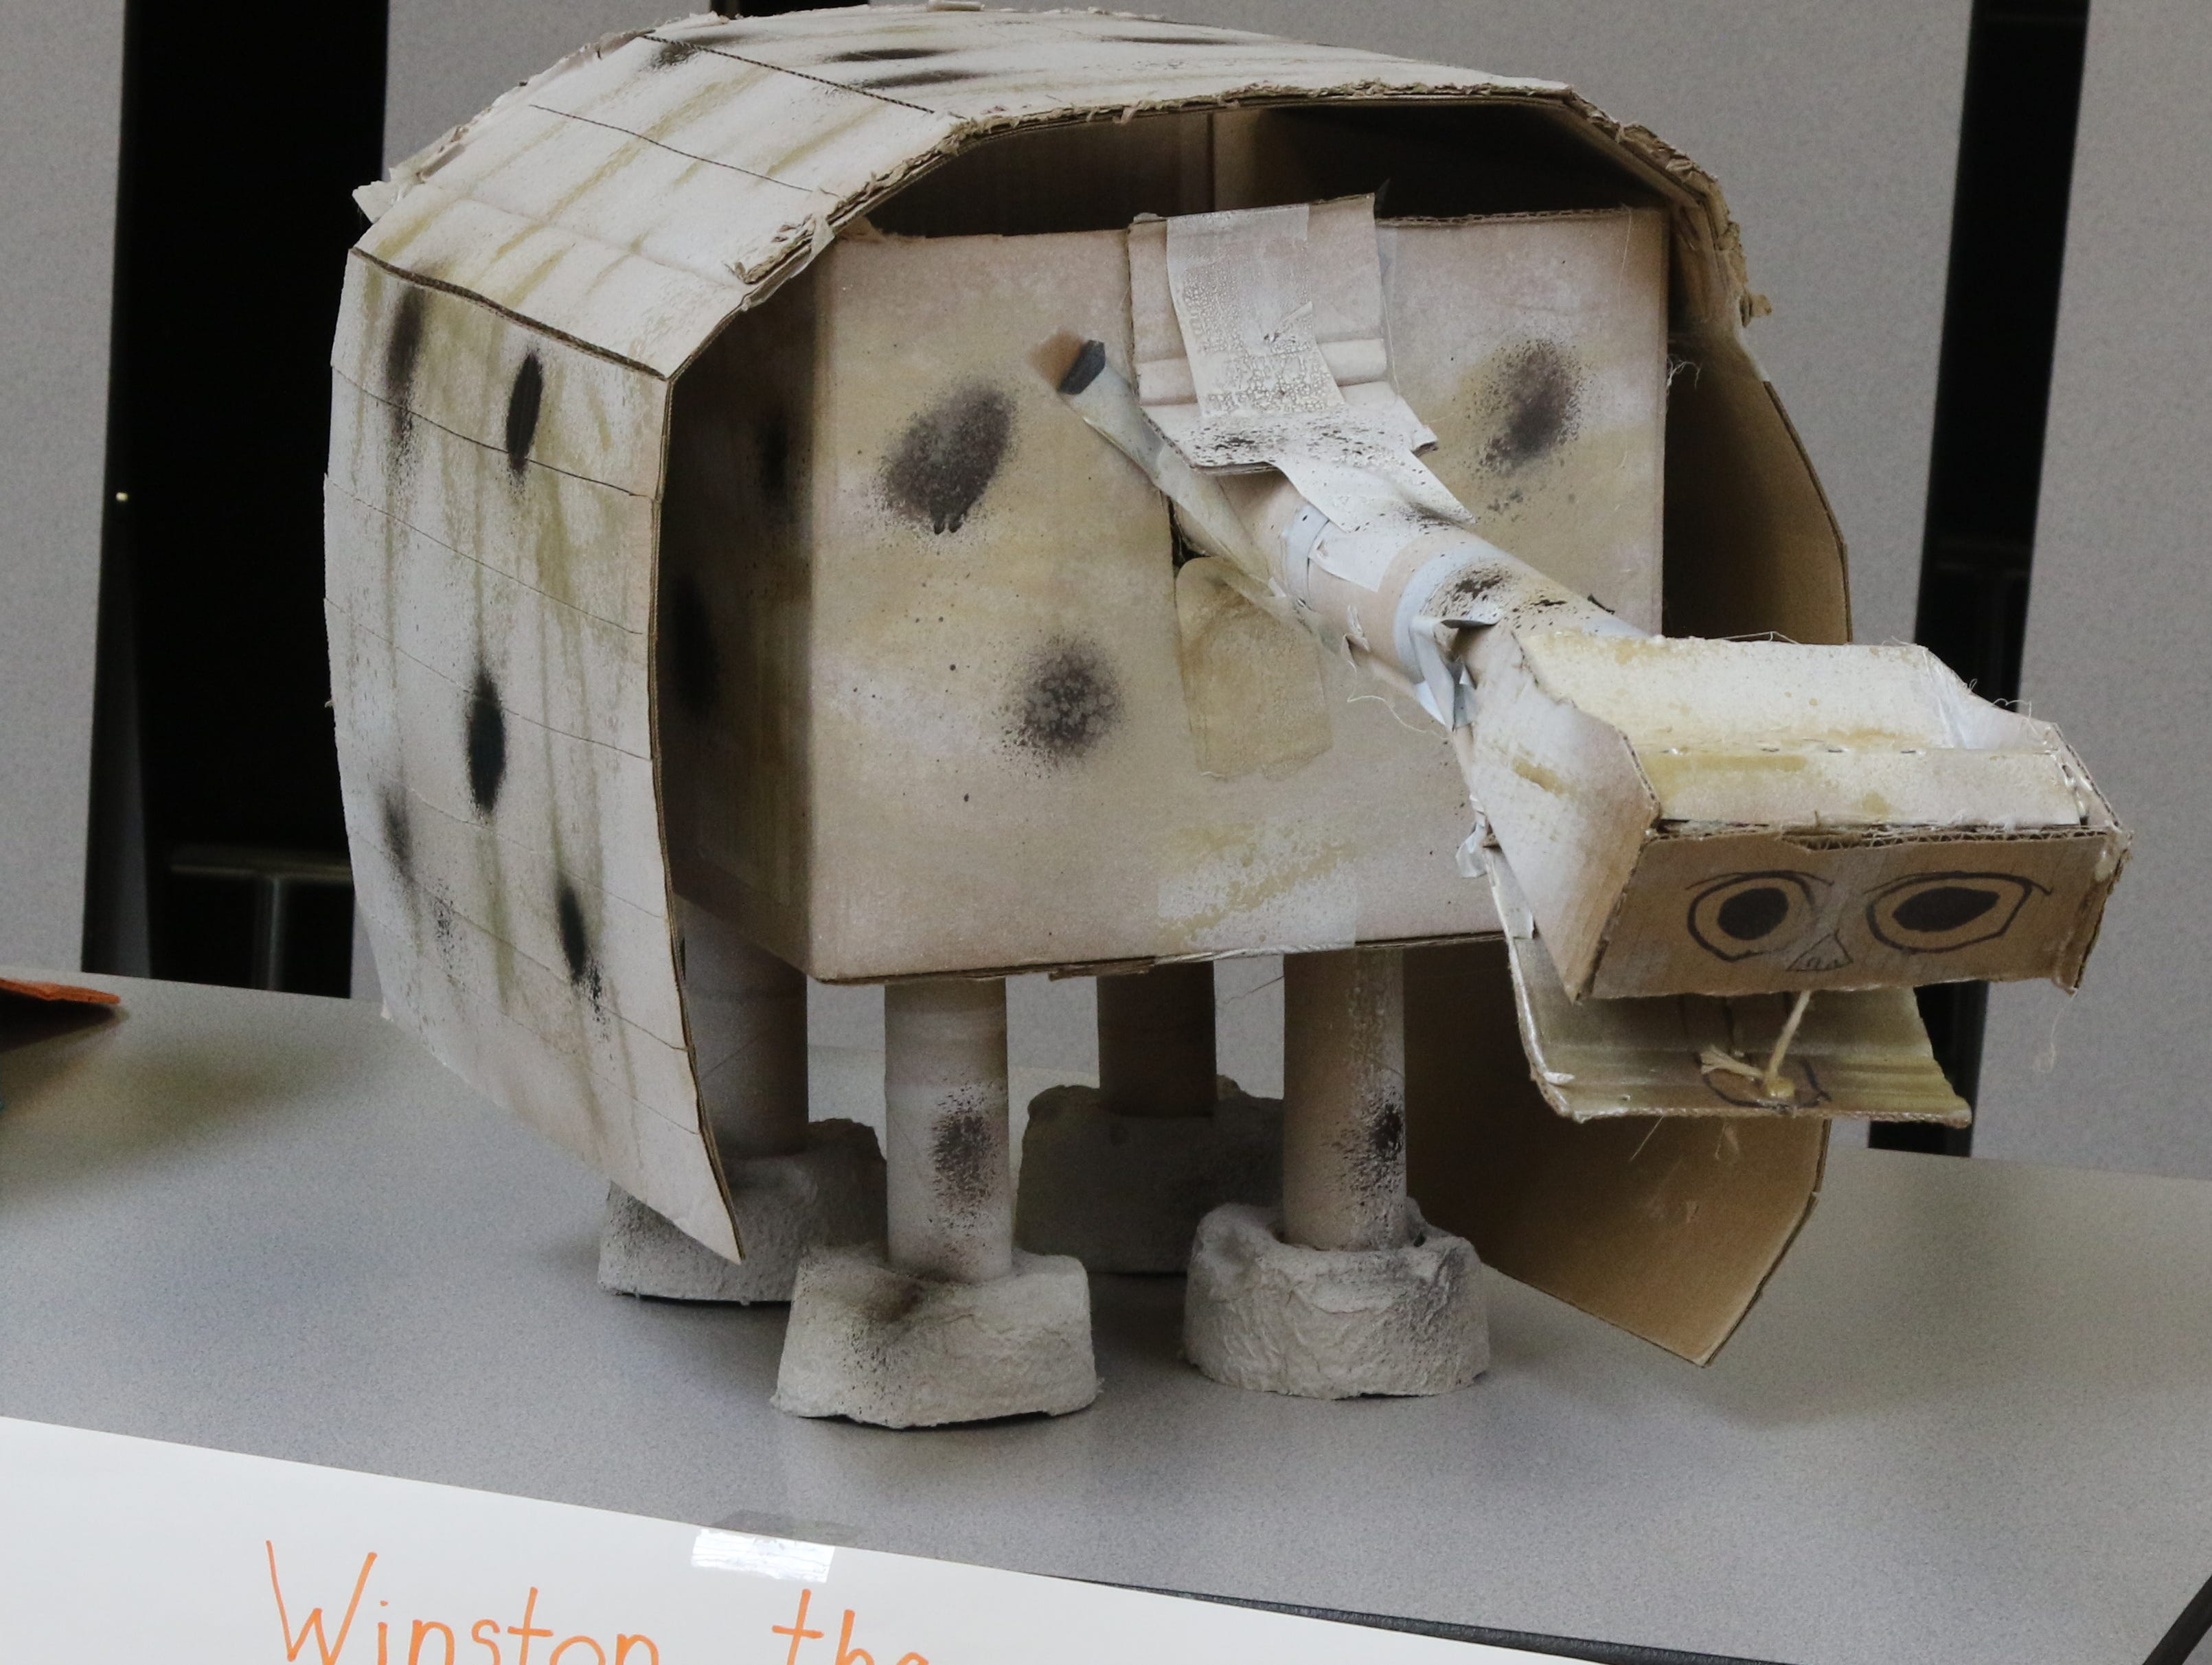 Winston the Dinosaur is part of the Cardboard Animal-a-thon at Ramapo HS where engineering students work on and display their projects, making mechanical animals out of cardboard. They also helped younger students work on projects during the event held at Ramapo HS on February 9, 2019.